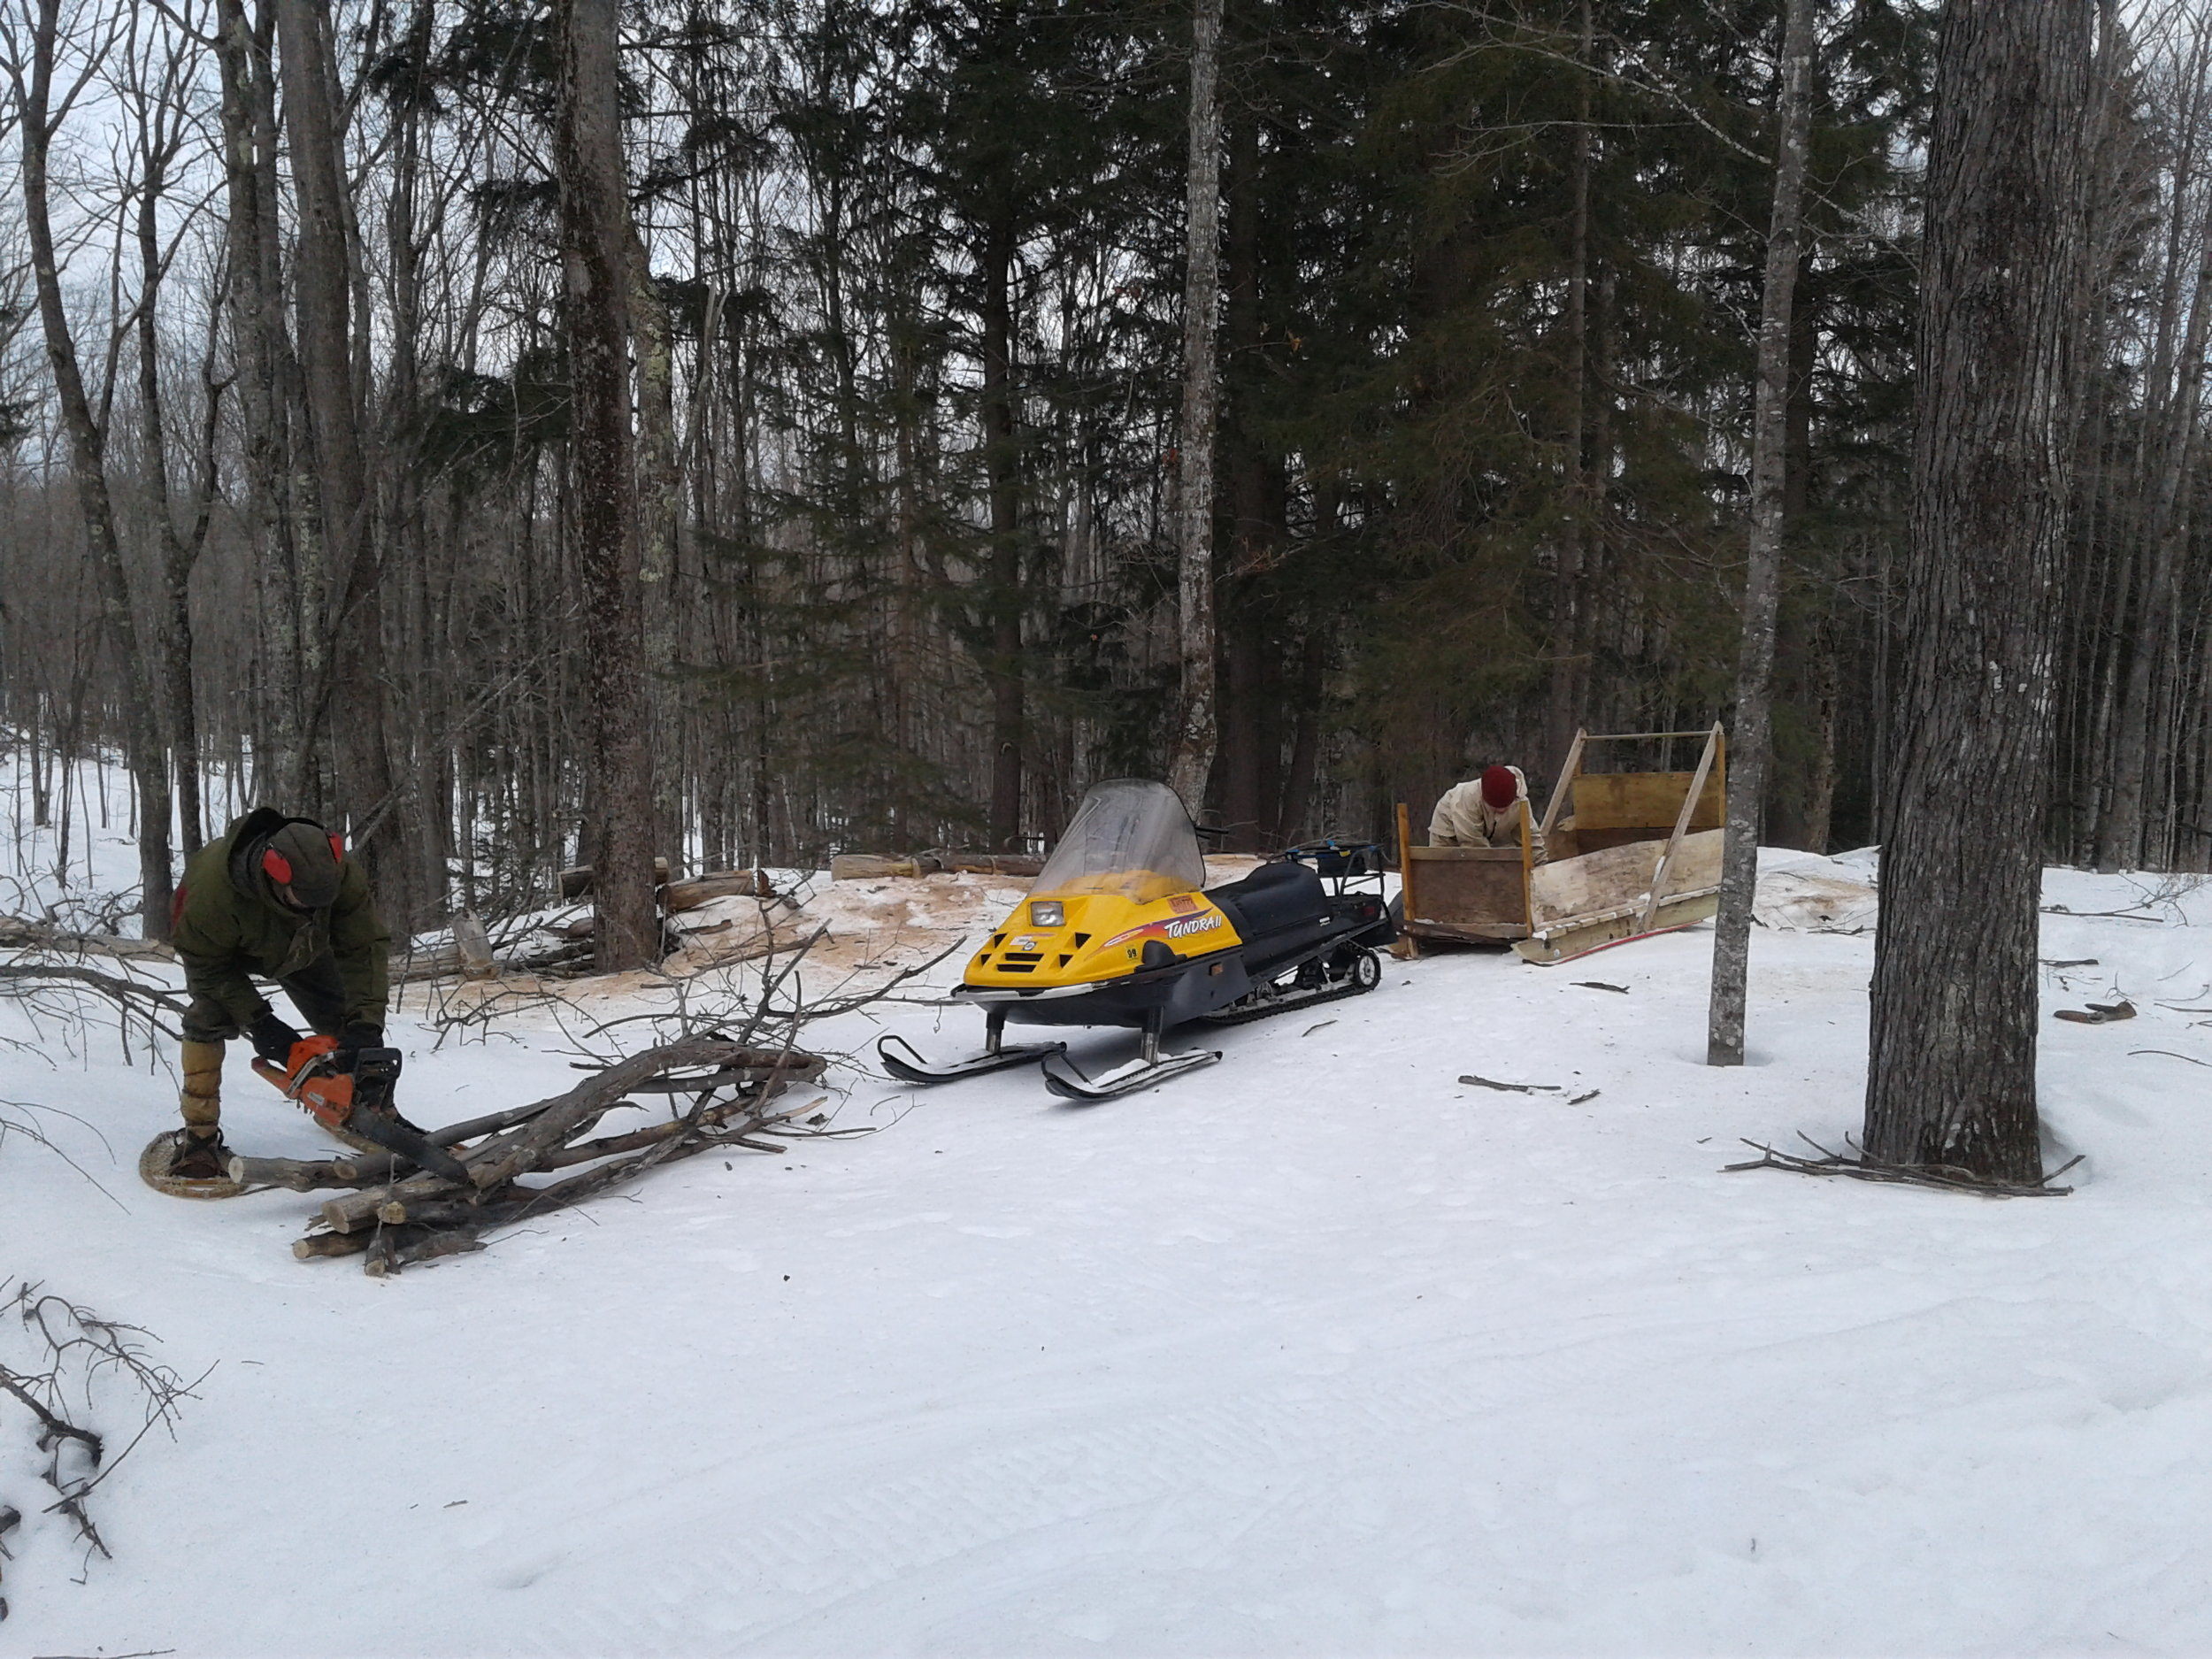 Jan cutting wood on snowshoes